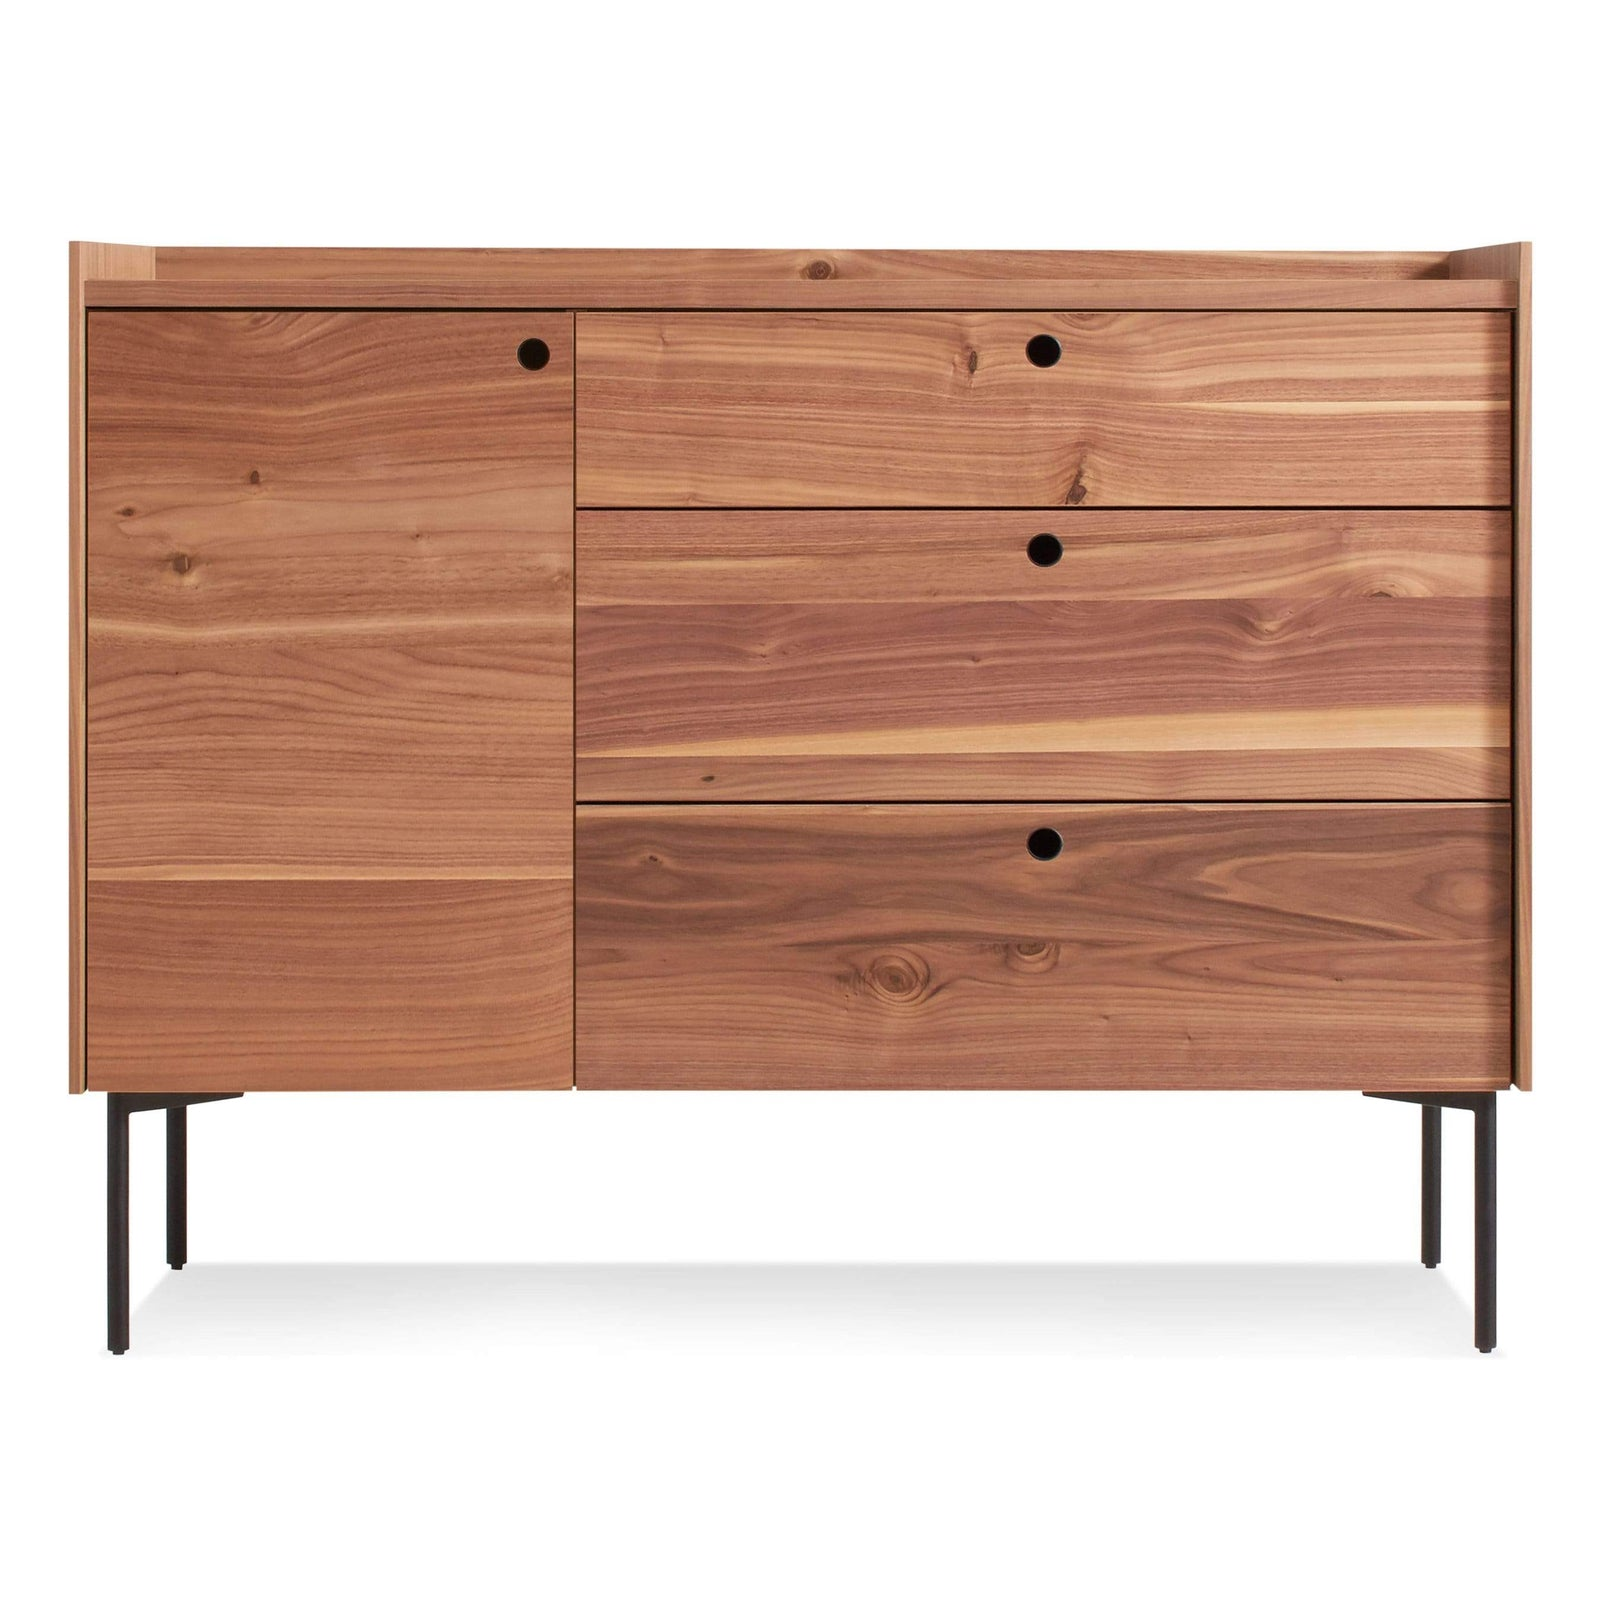 Blu Dot Furniture Rustic Walnut Peek Credenza